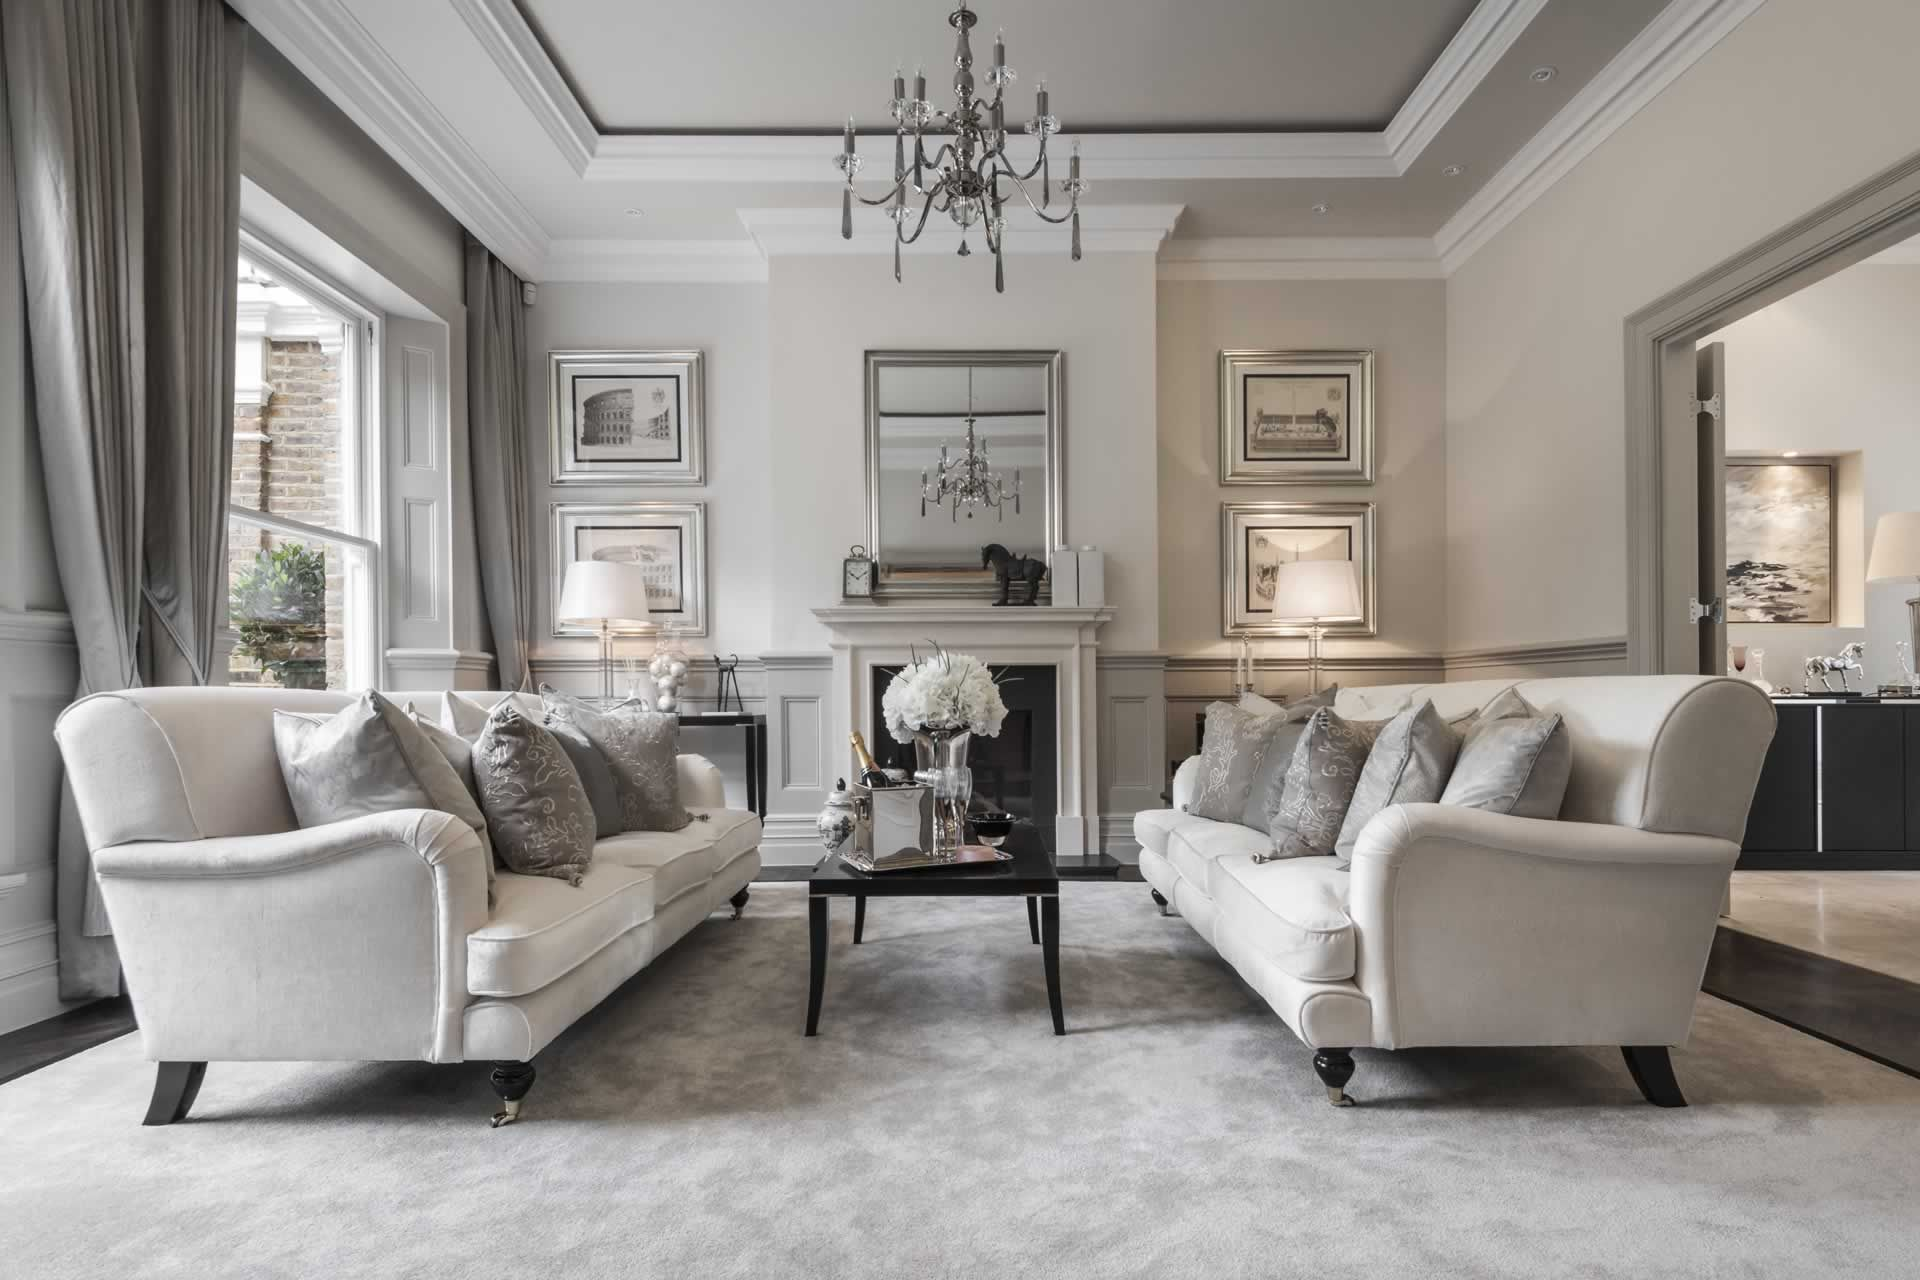 Http://www.houzz.com/photos/2558832/Cleeves House Traditional Living Room London  | DIY Decorating | Pinterest | Room London, Traditional Living Rooms And ...